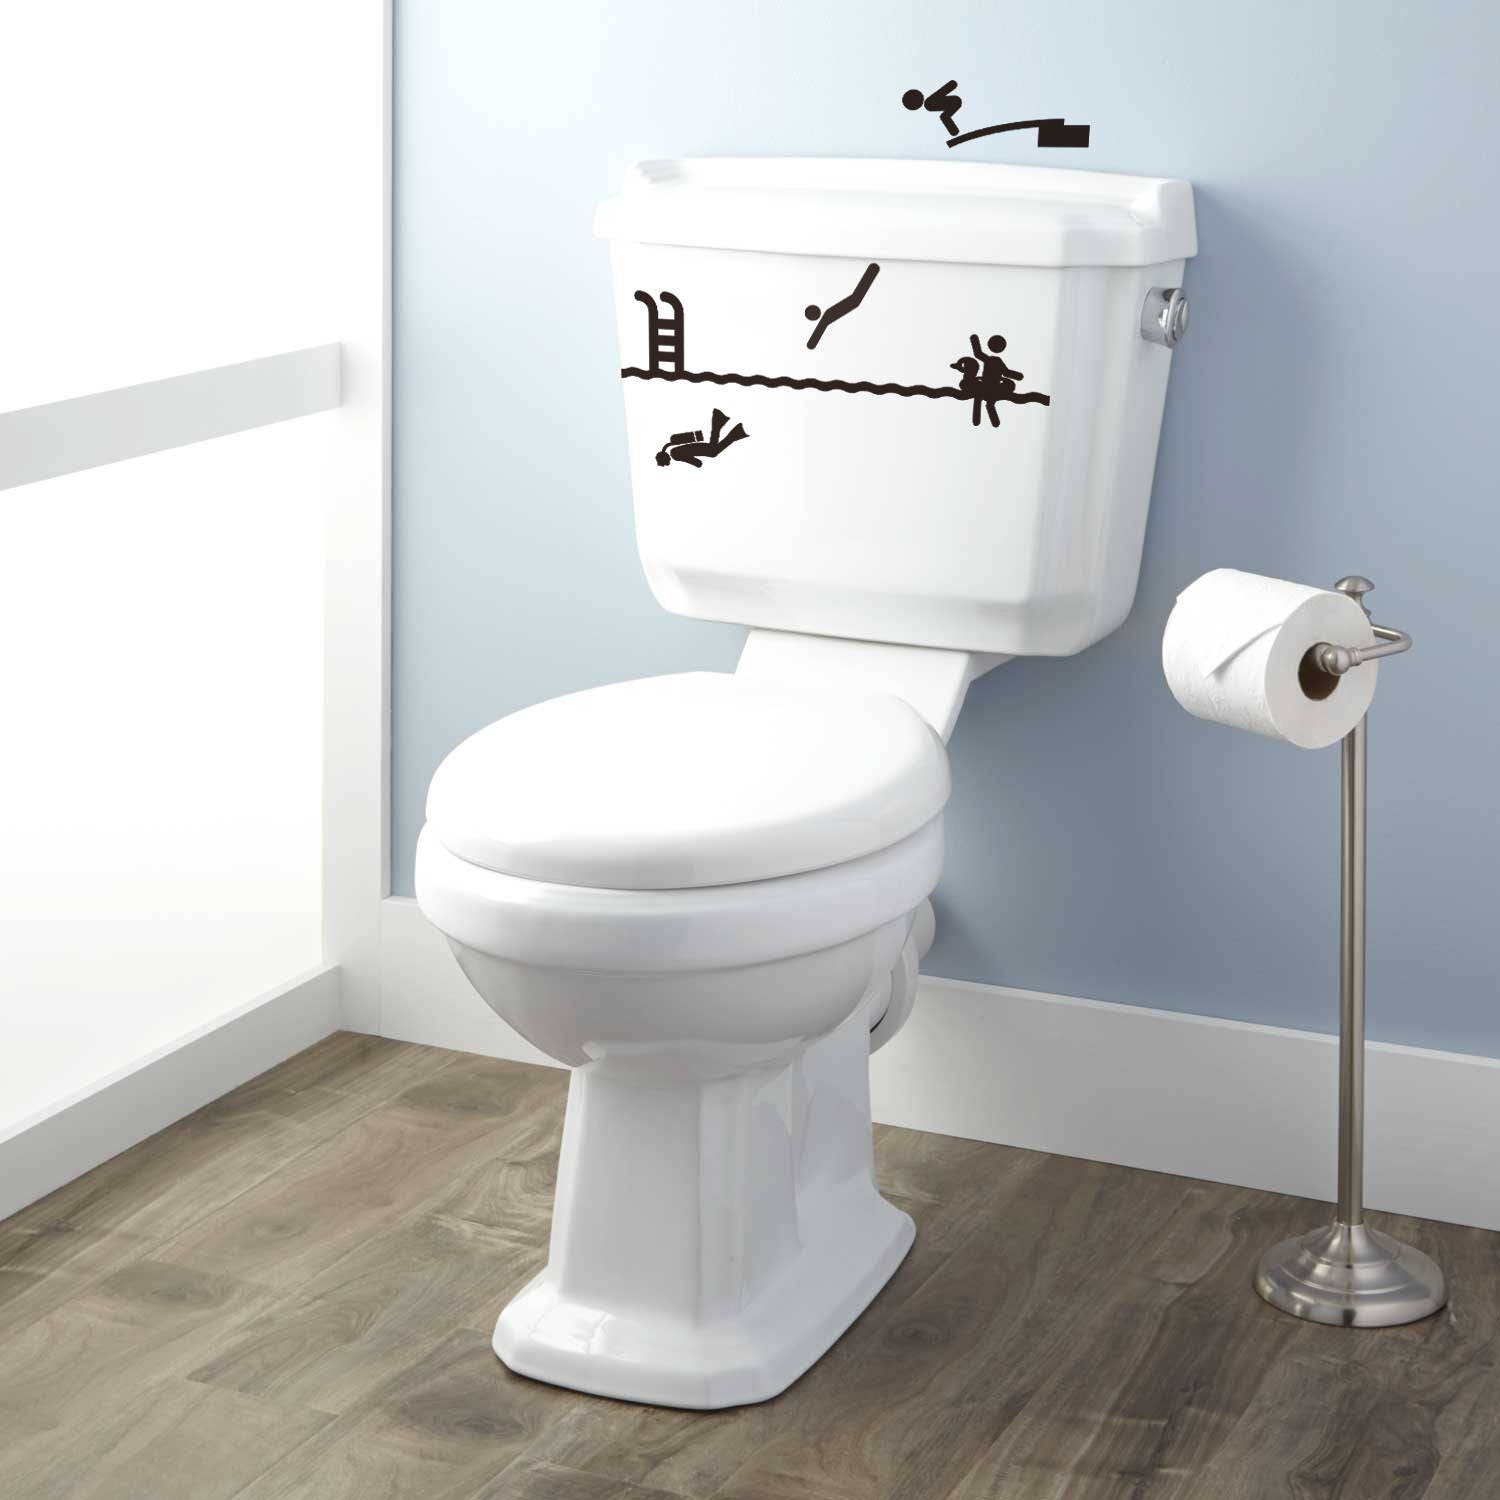 Toilet Decor Decal Set - The trip to the WC has never been so ...